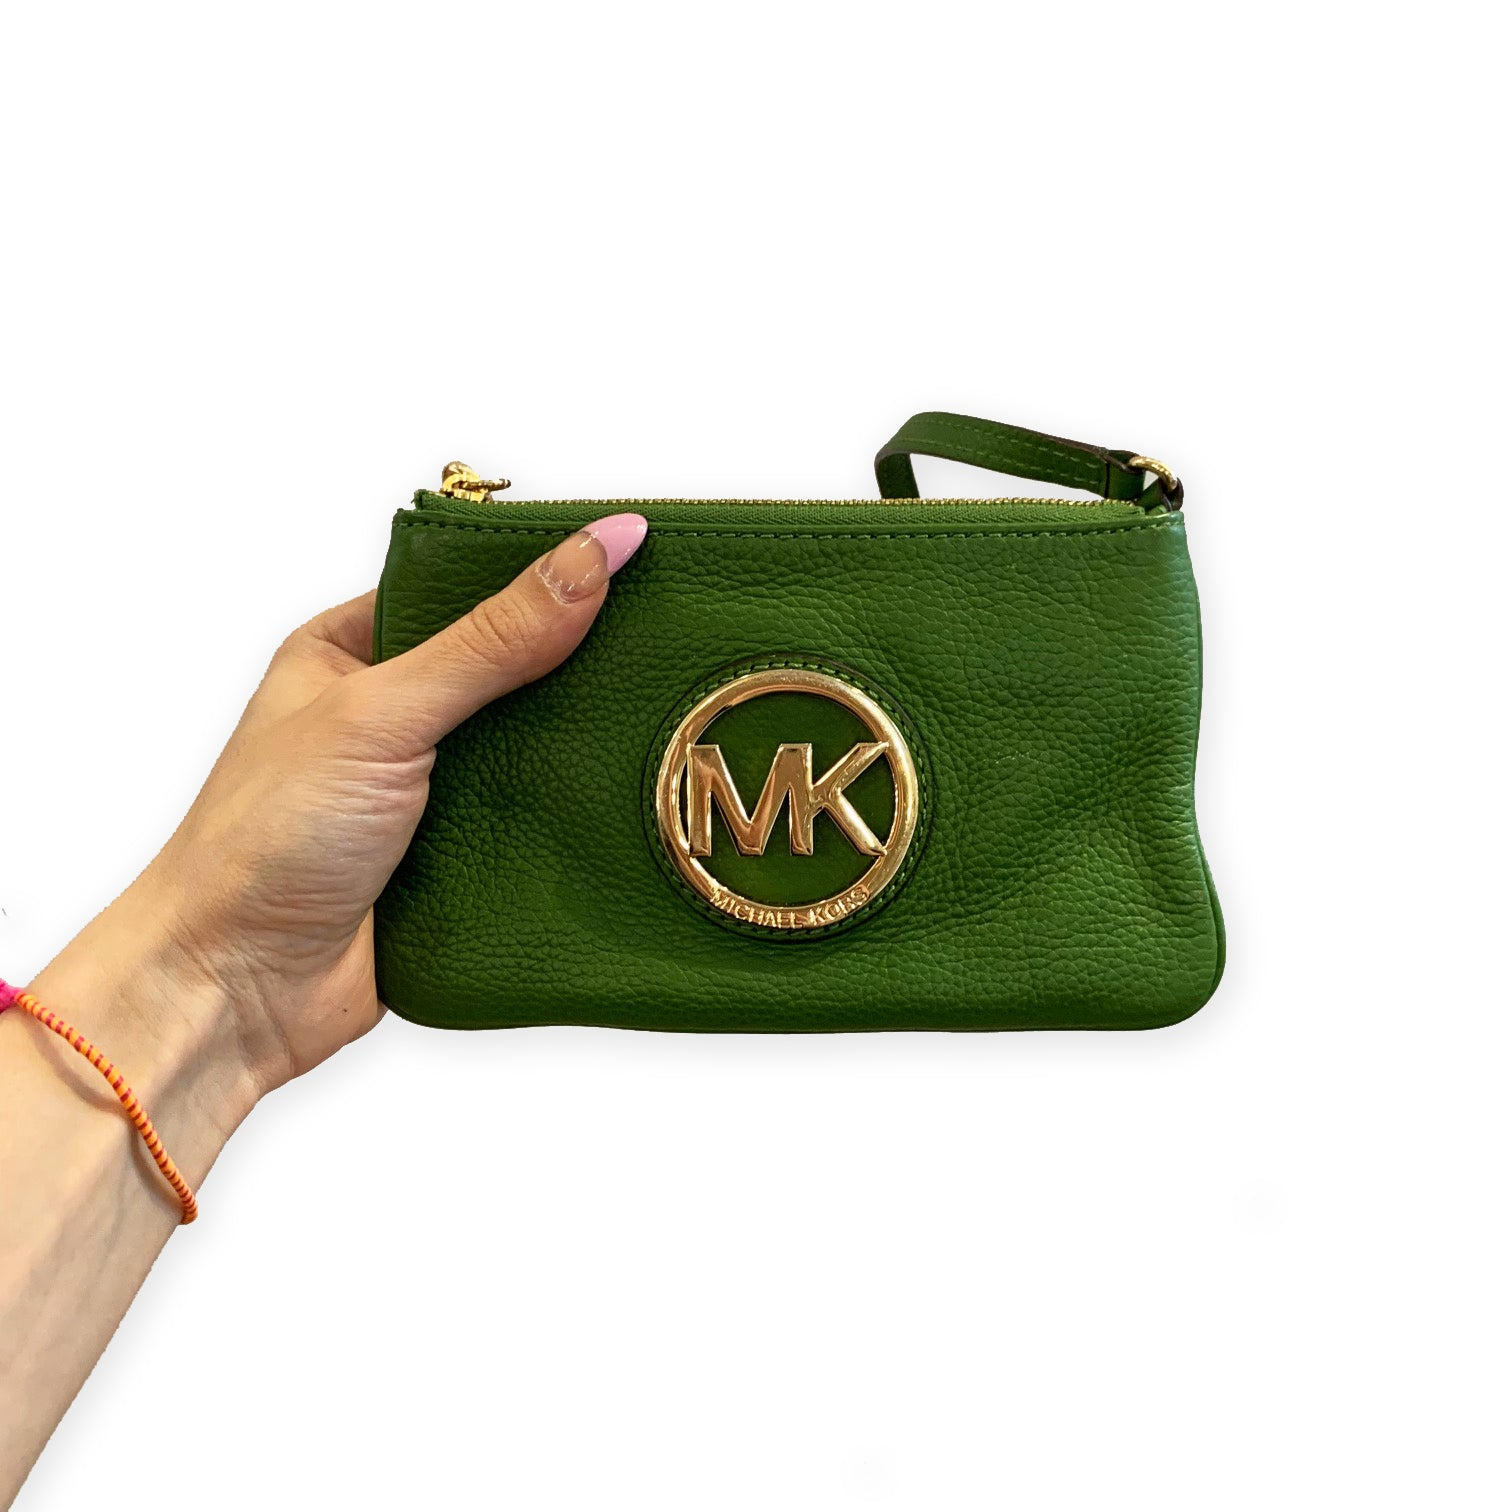 Michael Kors Green & Gold Wristlet